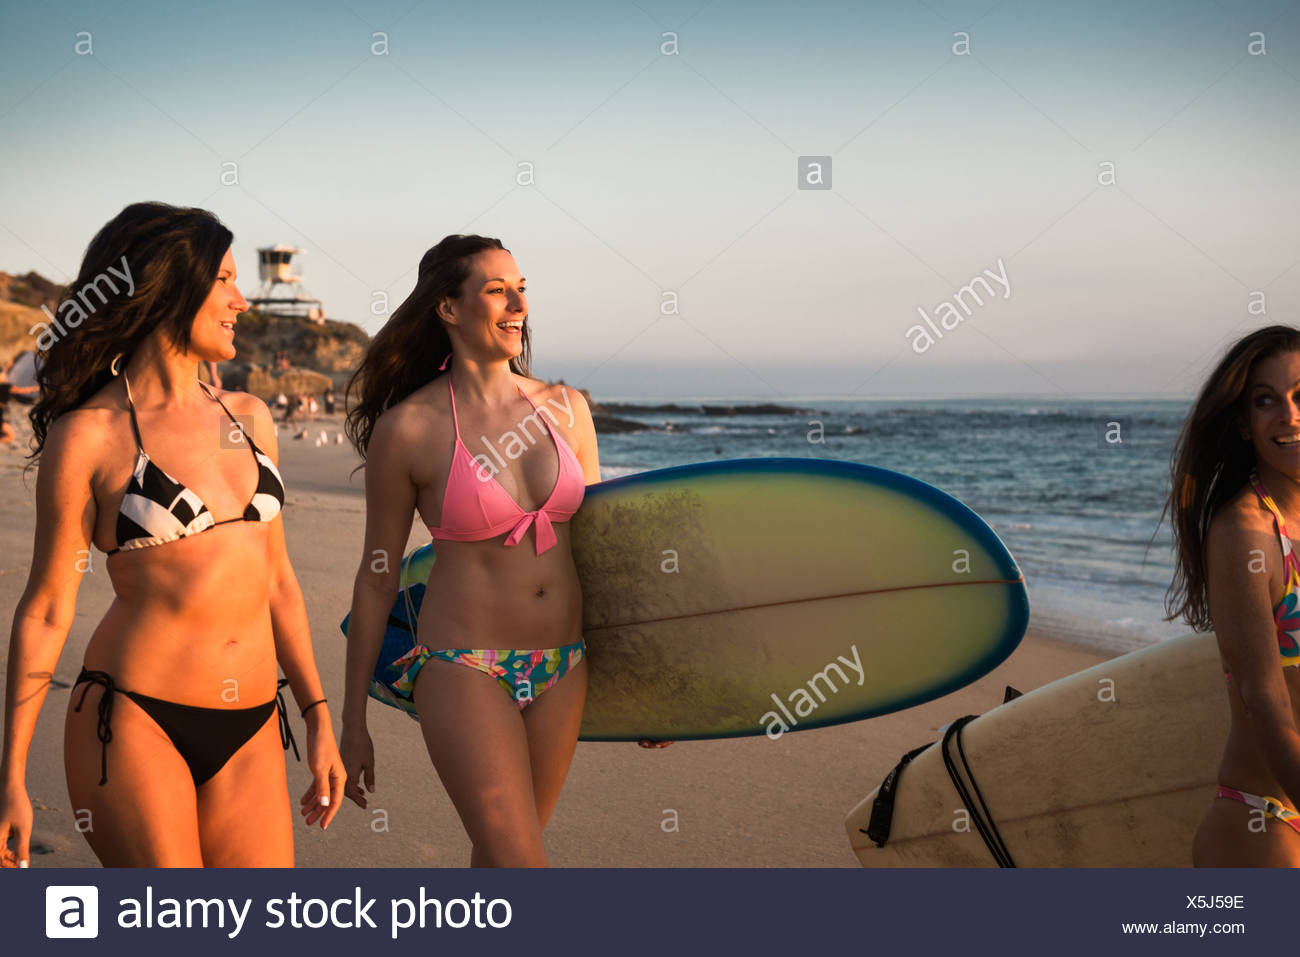 Surfers carrying surf boards, walking along beach - Stock Image